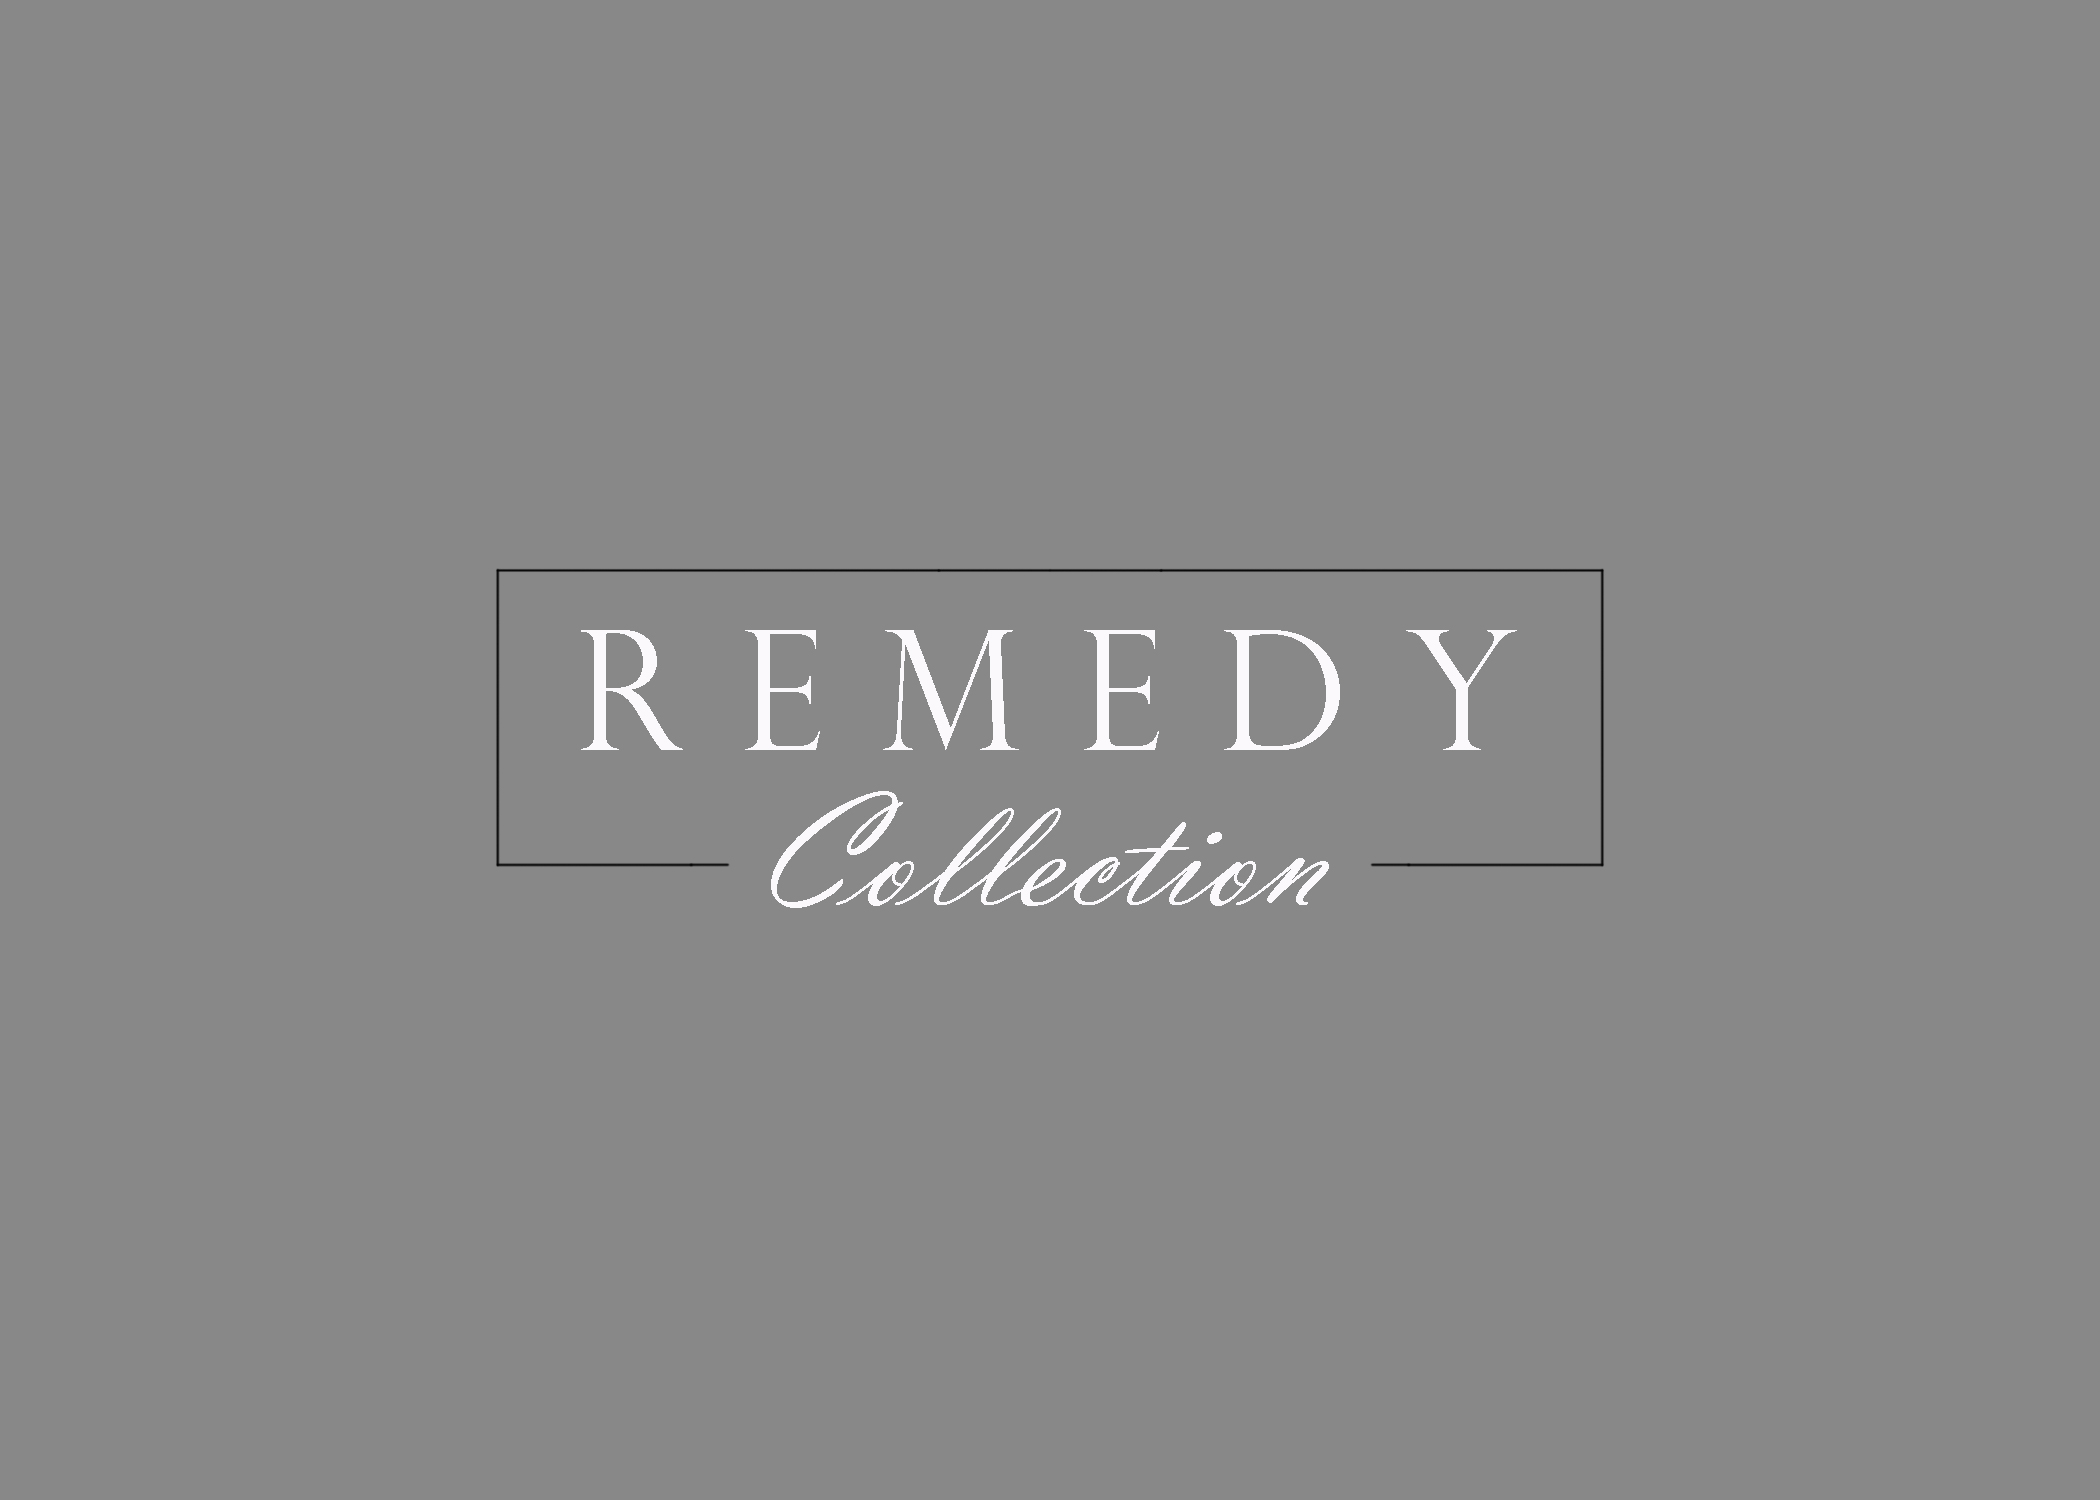 Remedy Collection